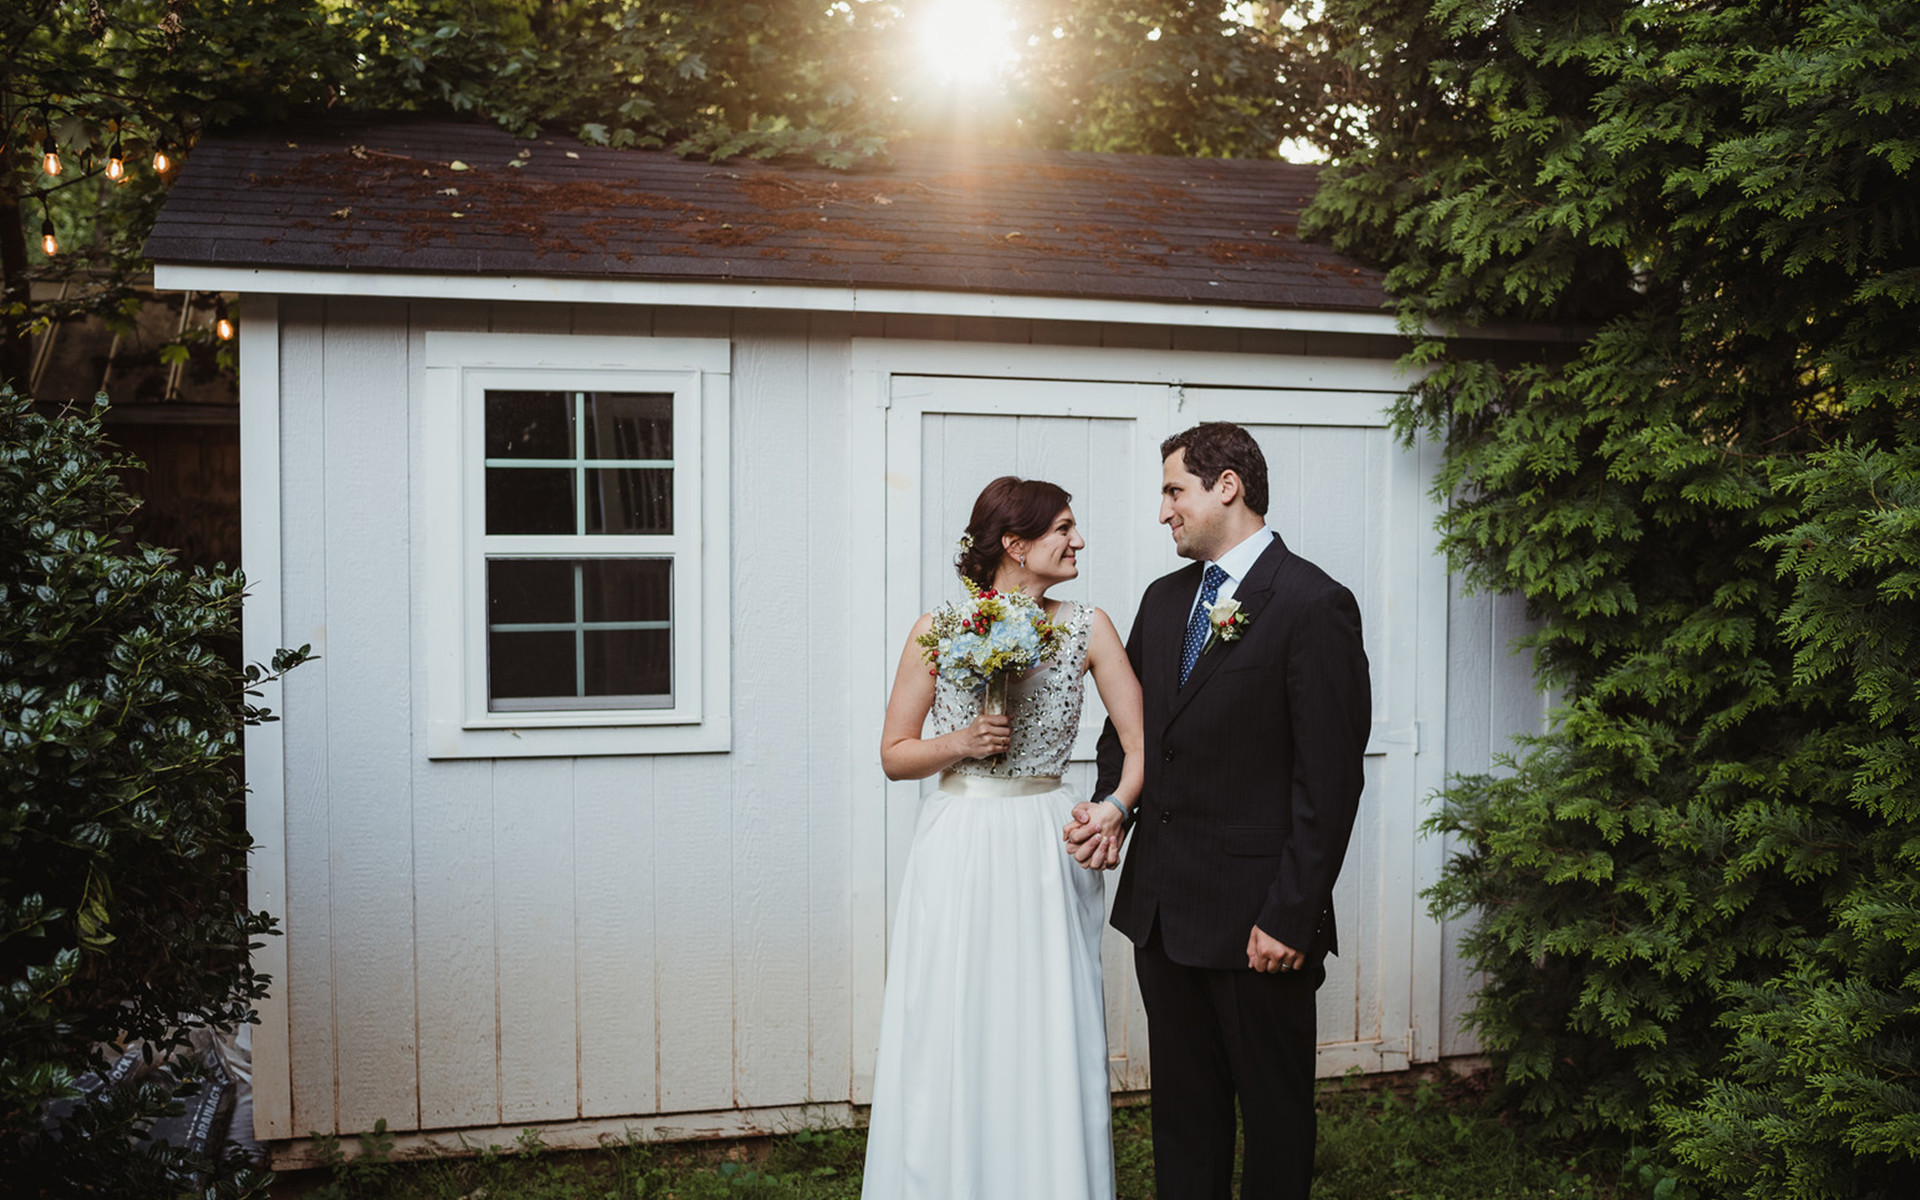 Intimate Backyard Ceremony with Garden Gnome and Puppy Appearances